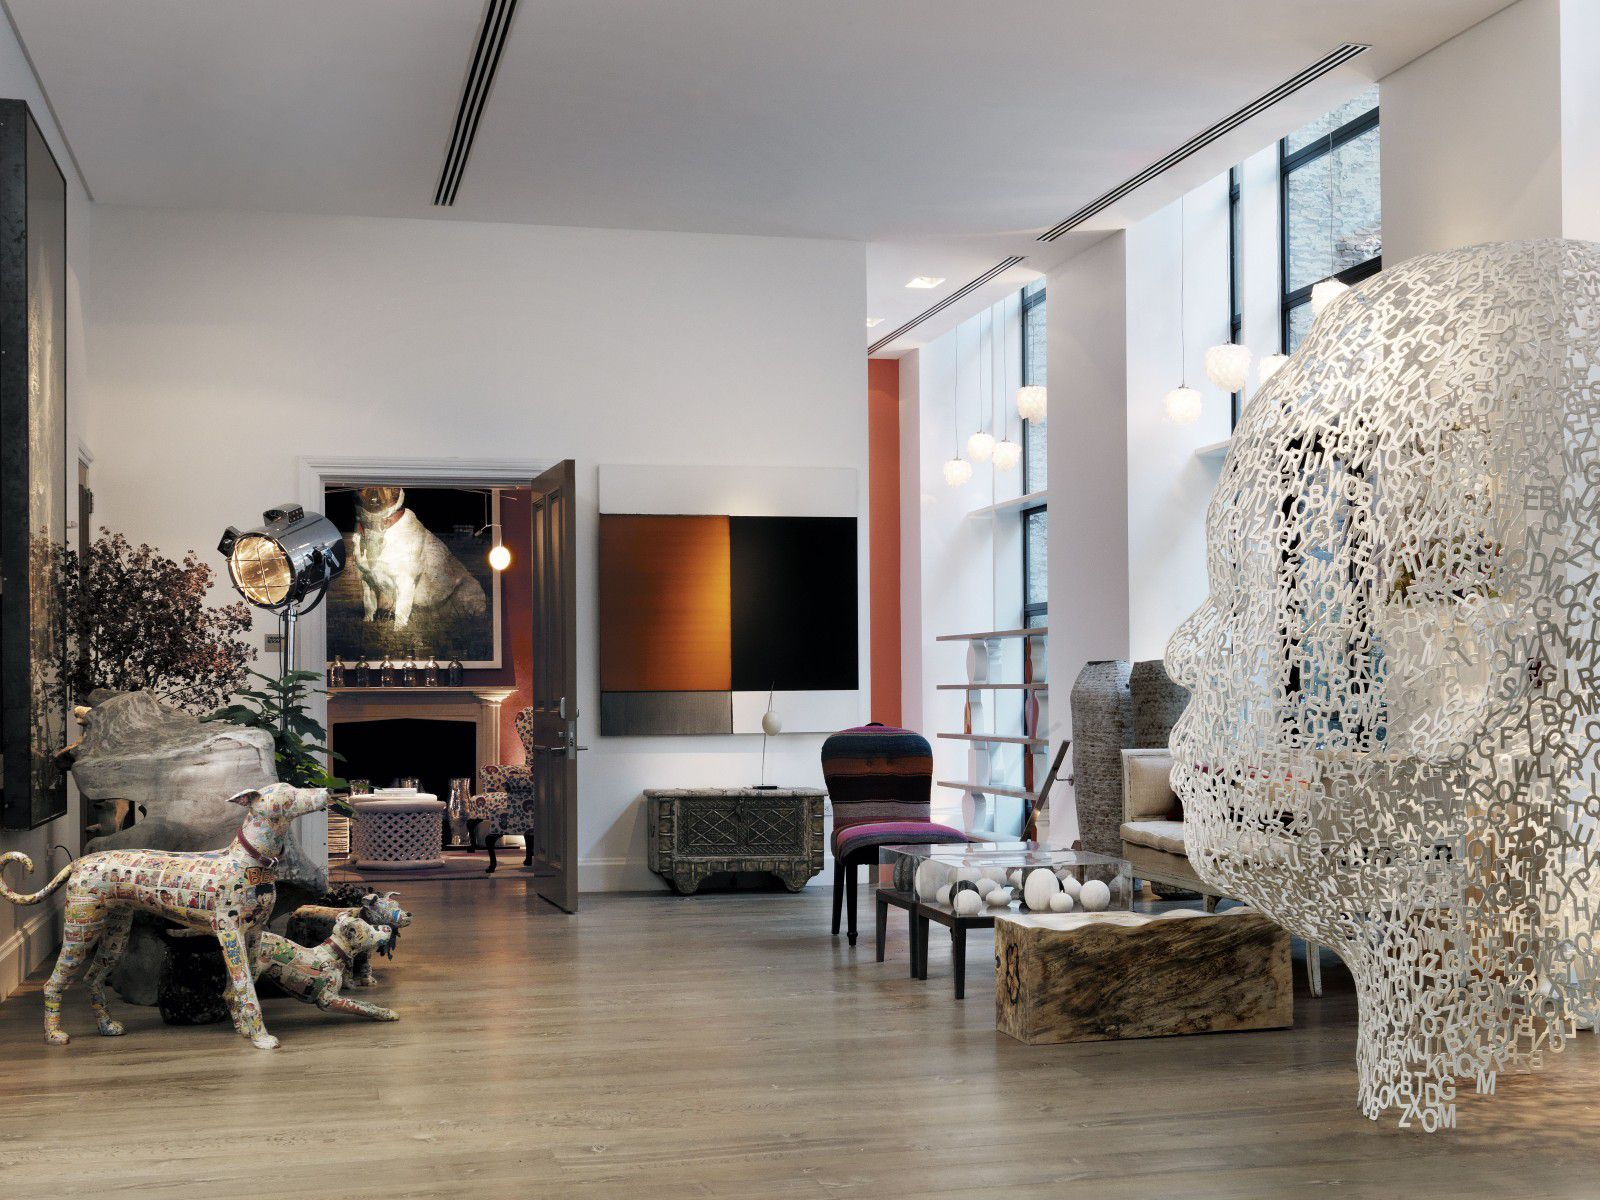 NYCrosby Street Hotel Lobby Jaume Plensa to DR closer in R